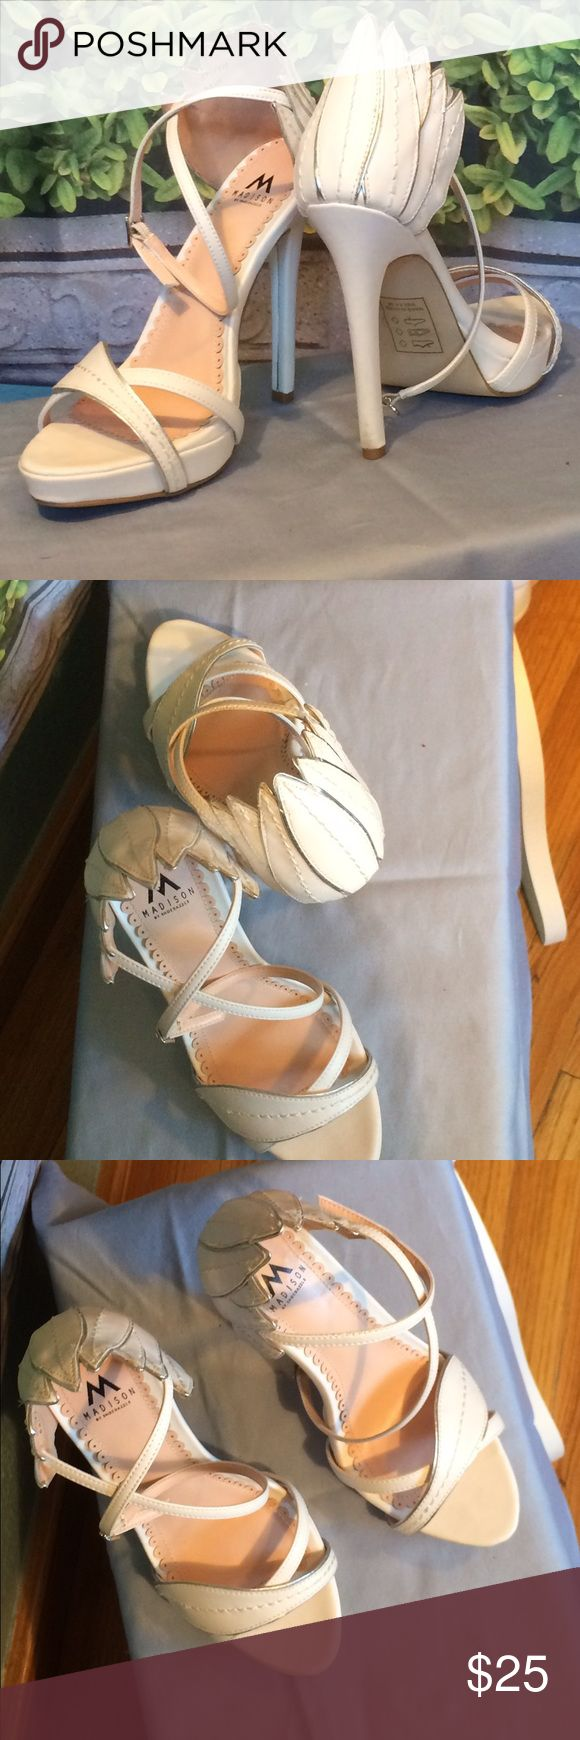 """Shoe Dazzle - White Swan heels Shoe Dazzle - Gorgeous and unique swan heels. True white with subtle silver lining. 5"""" height. Crisscross ankle straps. Open to reasonable offers. Shoe Dazzle Shoes Heels"""